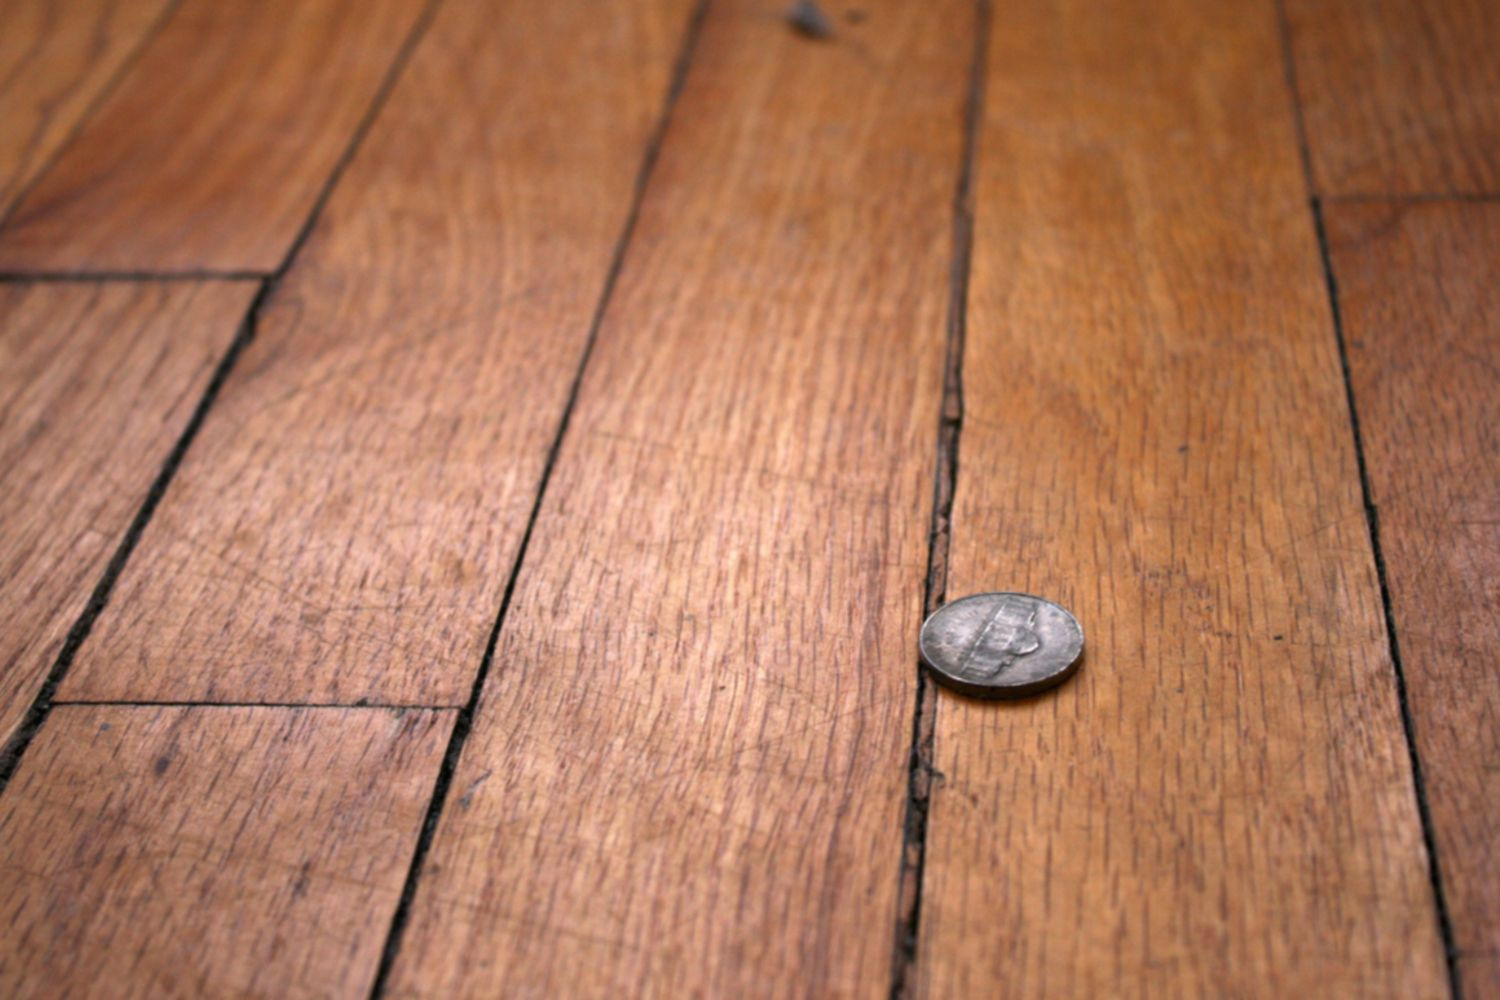 how to estimate hardwood floor installation of why your engineered wood flooring has gaps pertaining to wood floor with gaps between boards 1500 x 1000 56a49eb25f9b58b7d0d7df8d